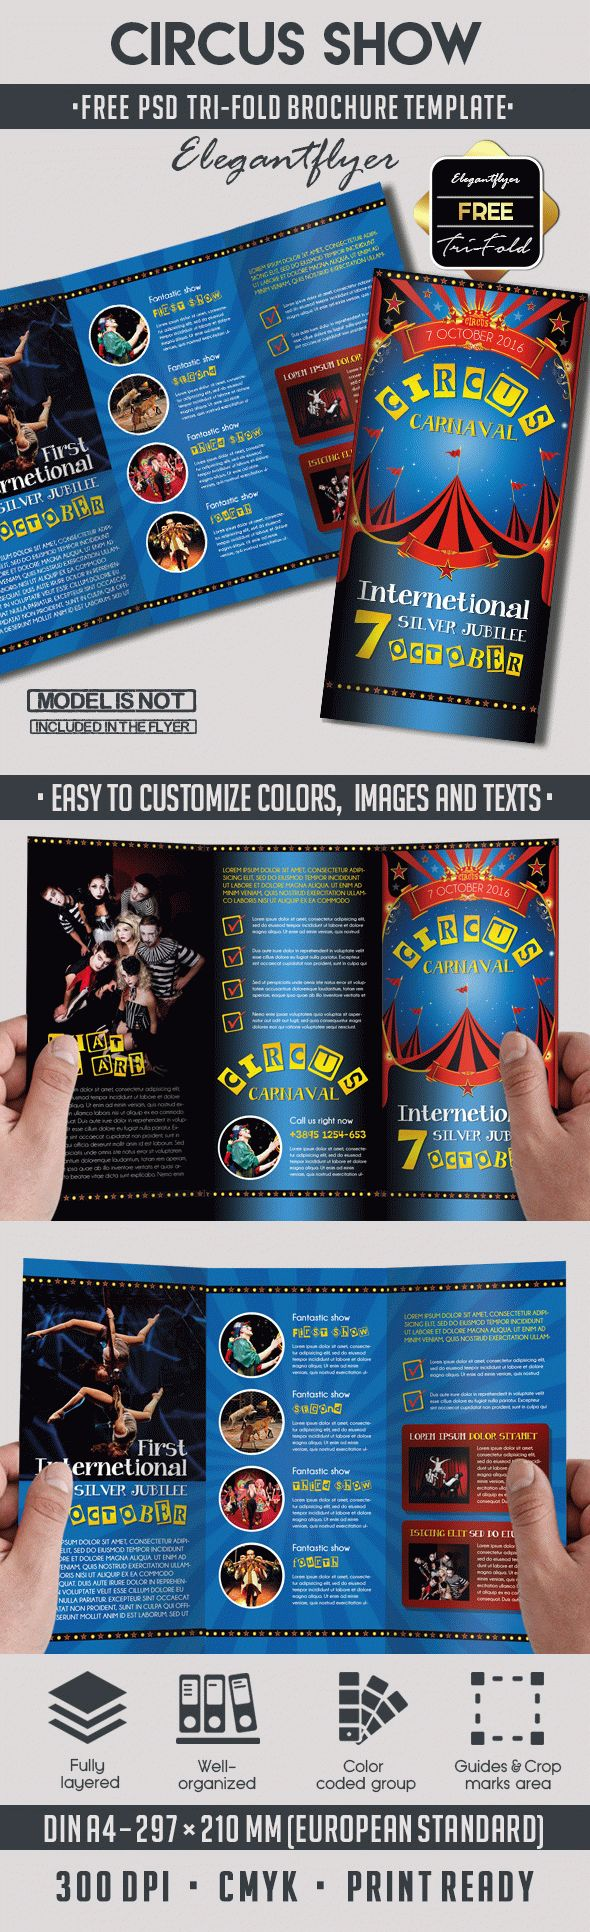 Circus free psd tri fold psd brochure template by for Tri fold brochure psd template